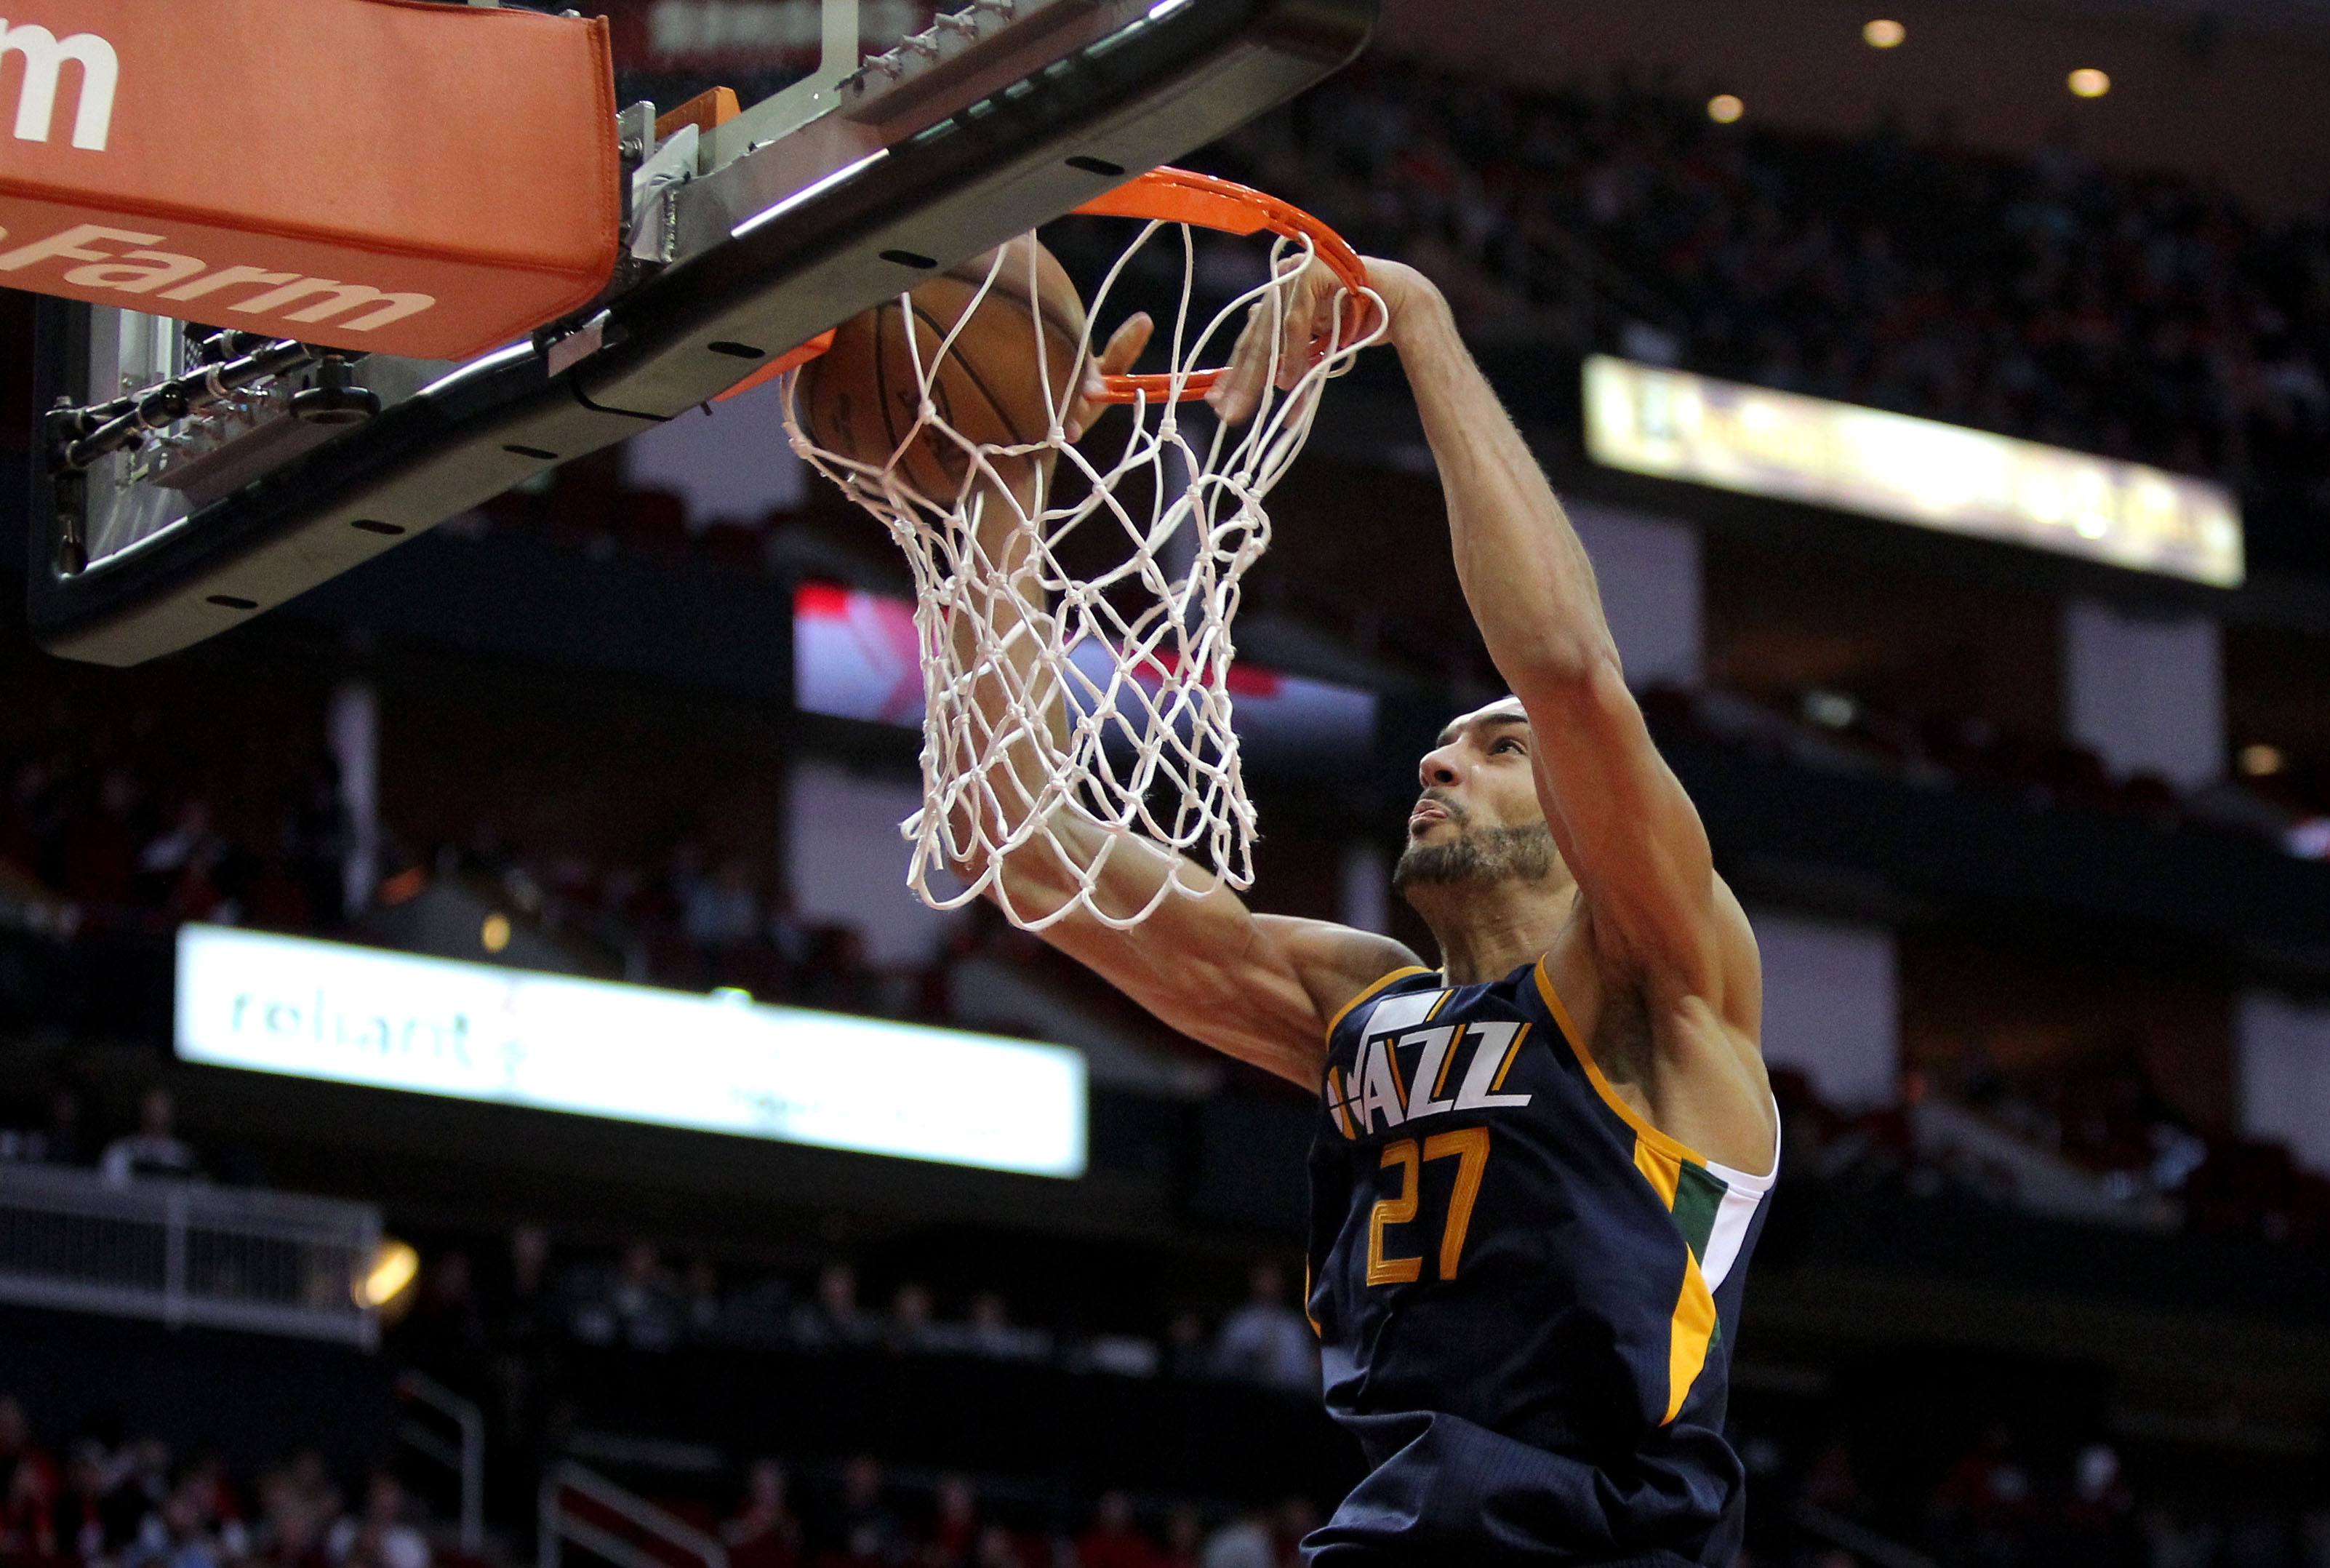 Jazz come out flat, lay an egg in important game against Clippers